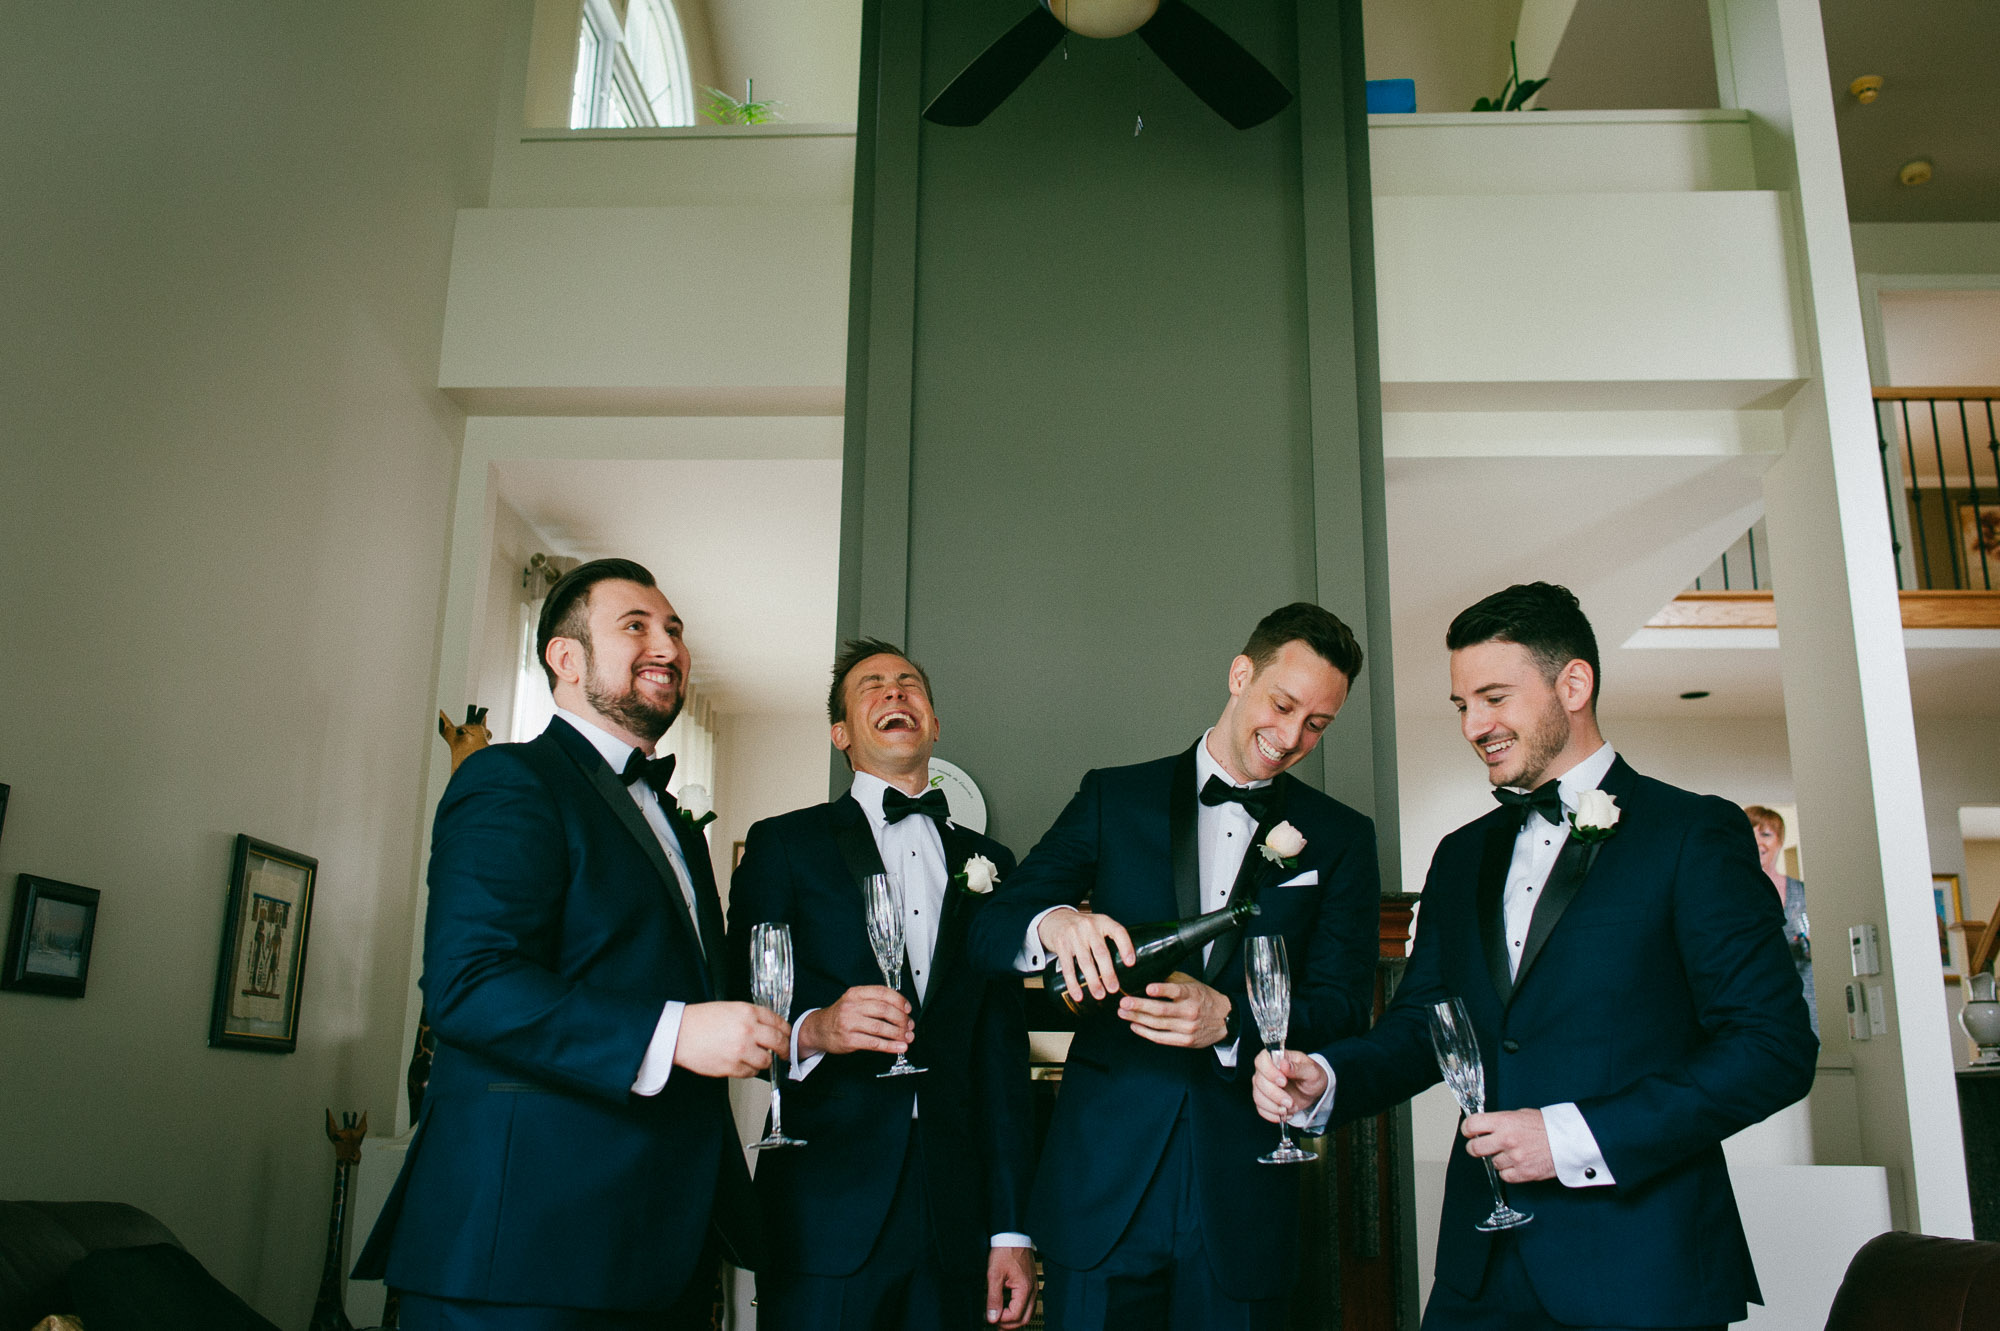 groomsmen-celebrating-with-champagne